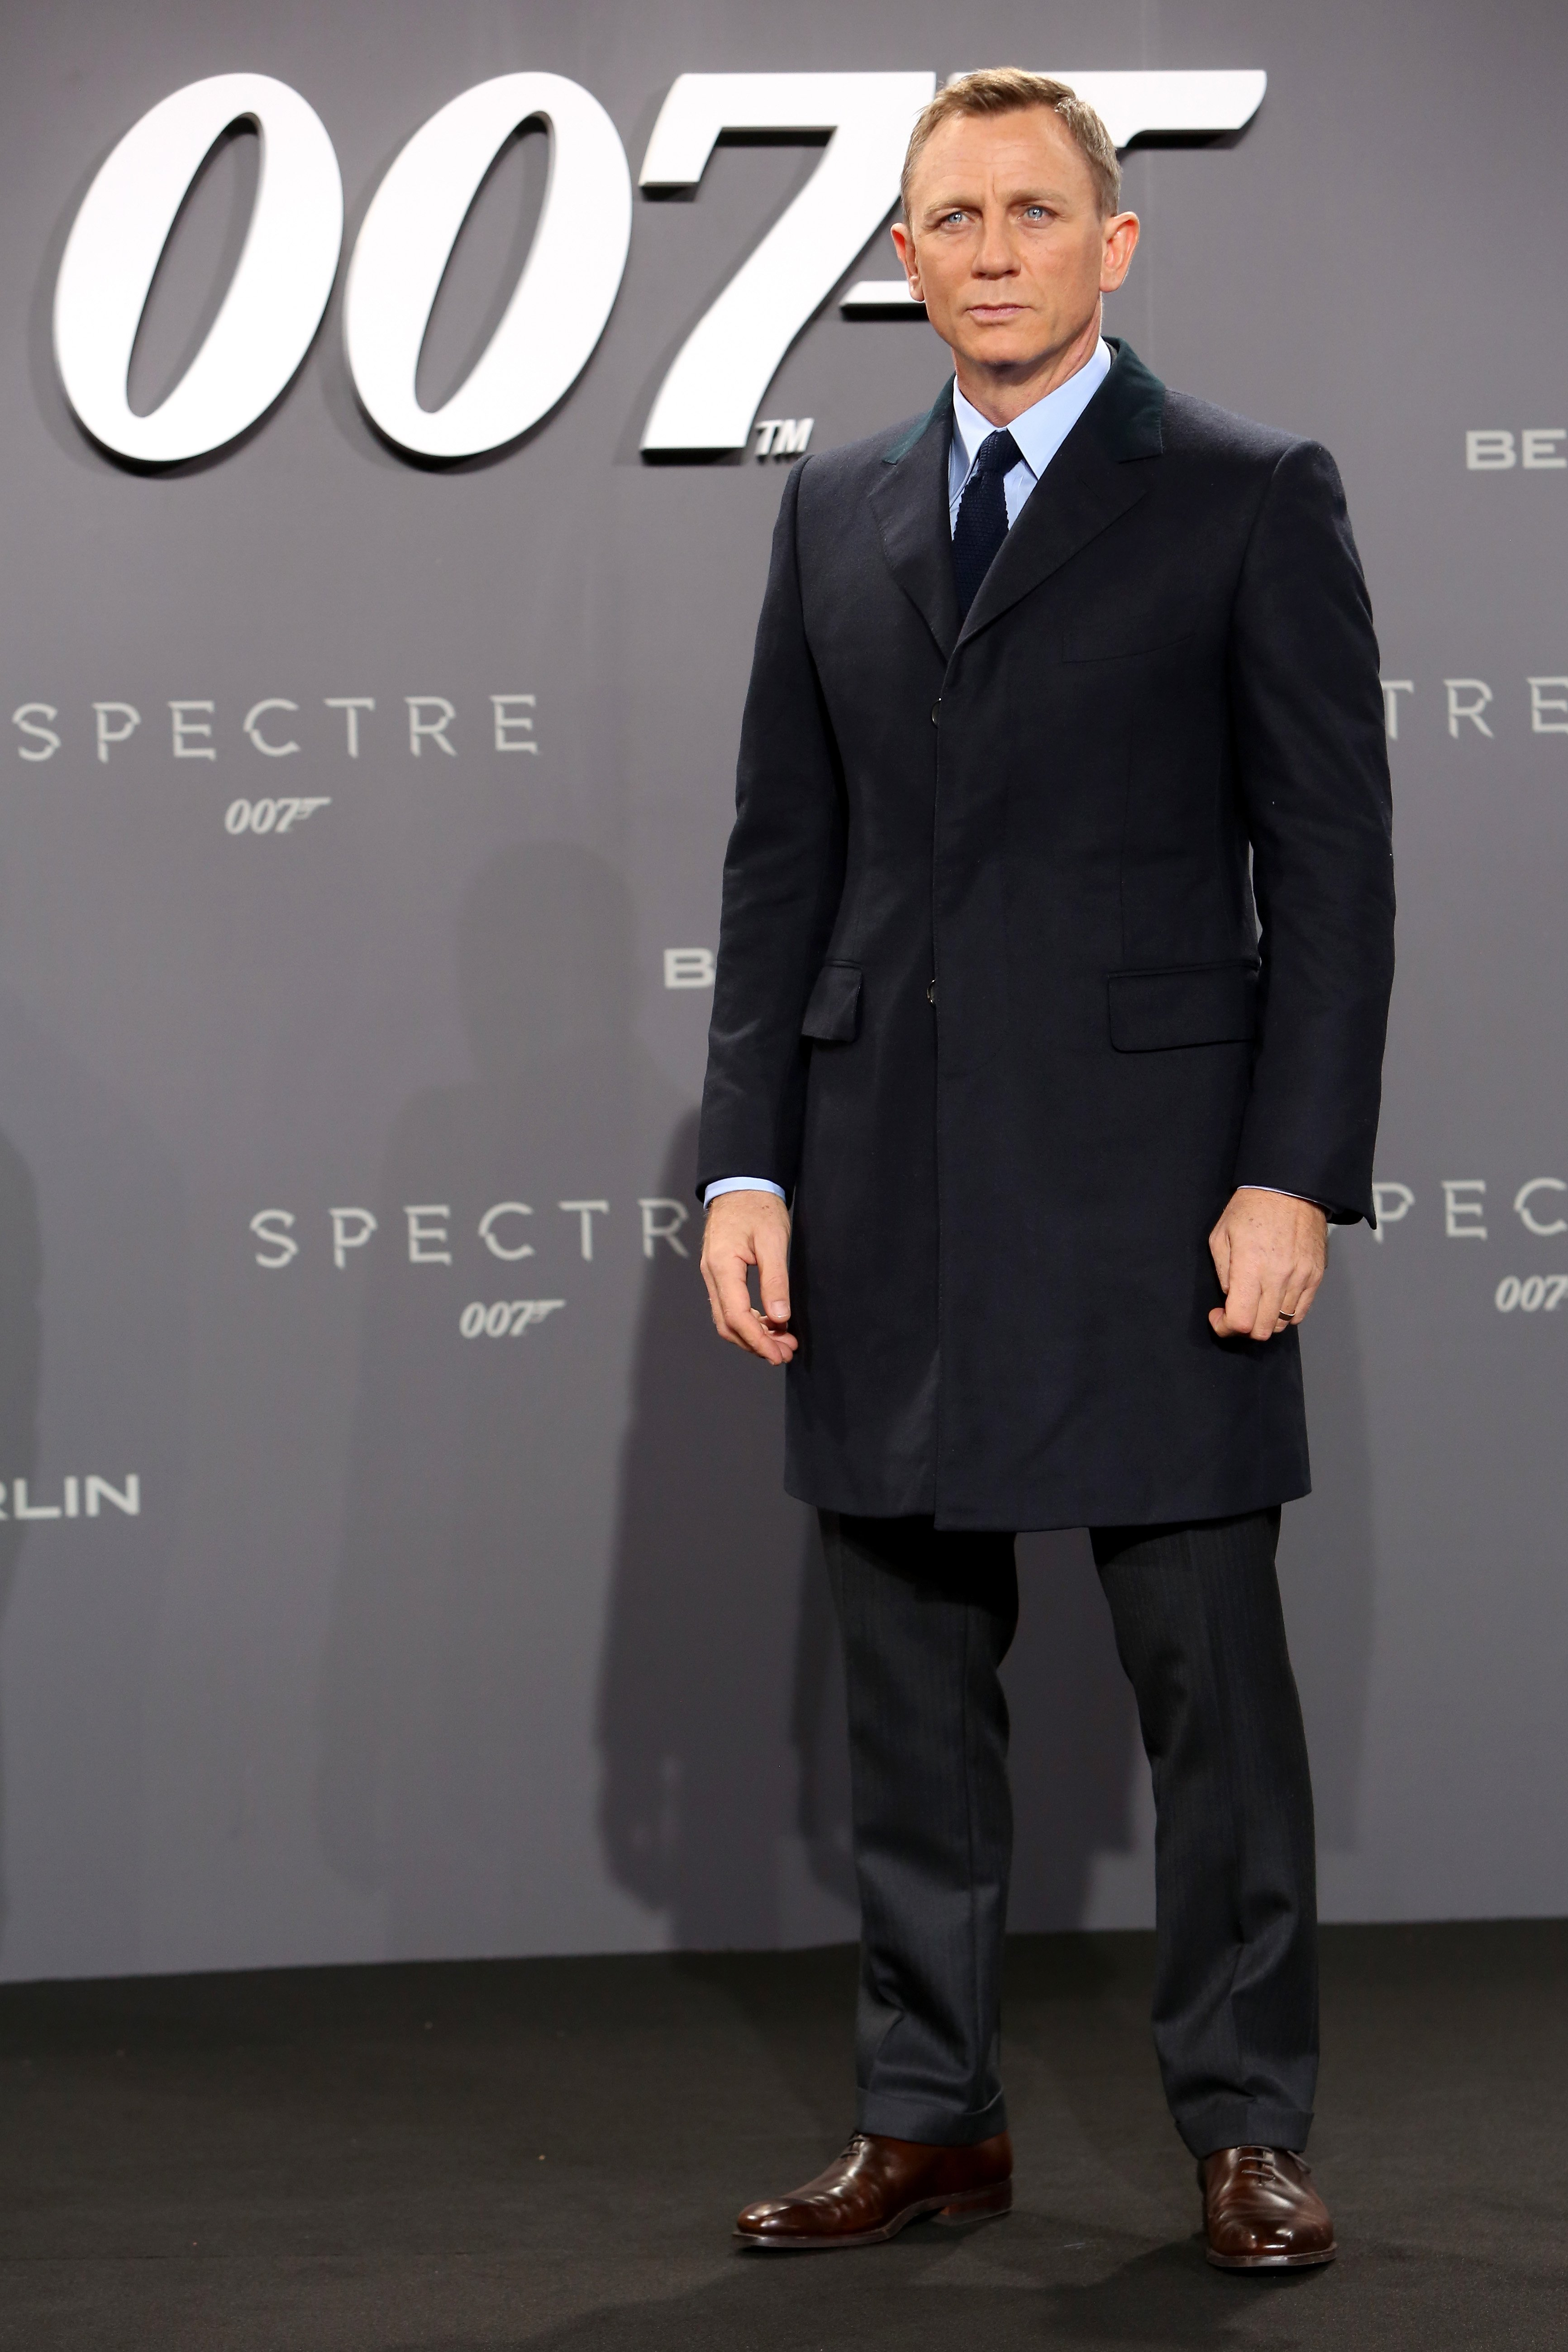 Actor Daniel Craig attends the German premiere of the new James Bond movie 'Spectre' at CineStar on October 28, 2015 in Berlin, Germany. | Source: Getty Images